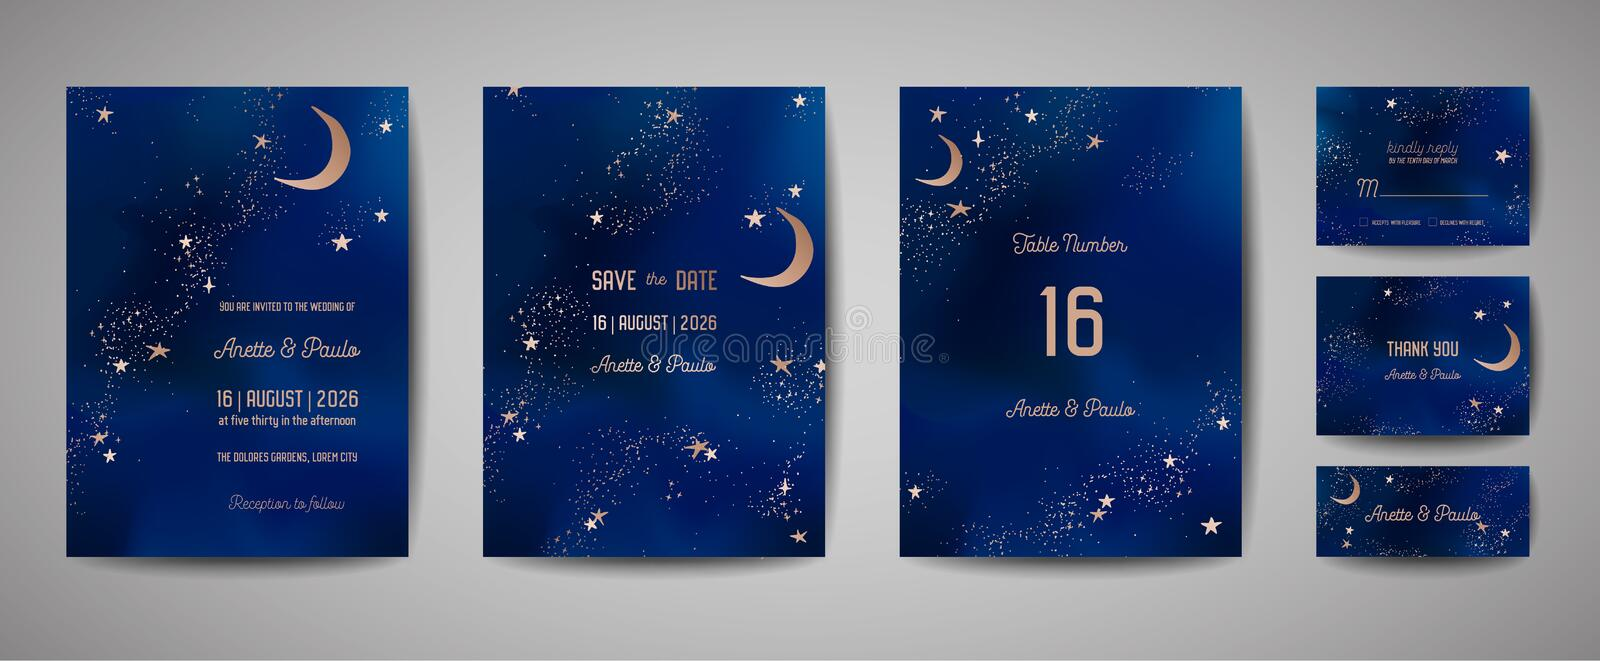 Mystical Night sky background with half moon and stars. Wedding moonlight night Invitation and Save the Date Card royalty free illustration